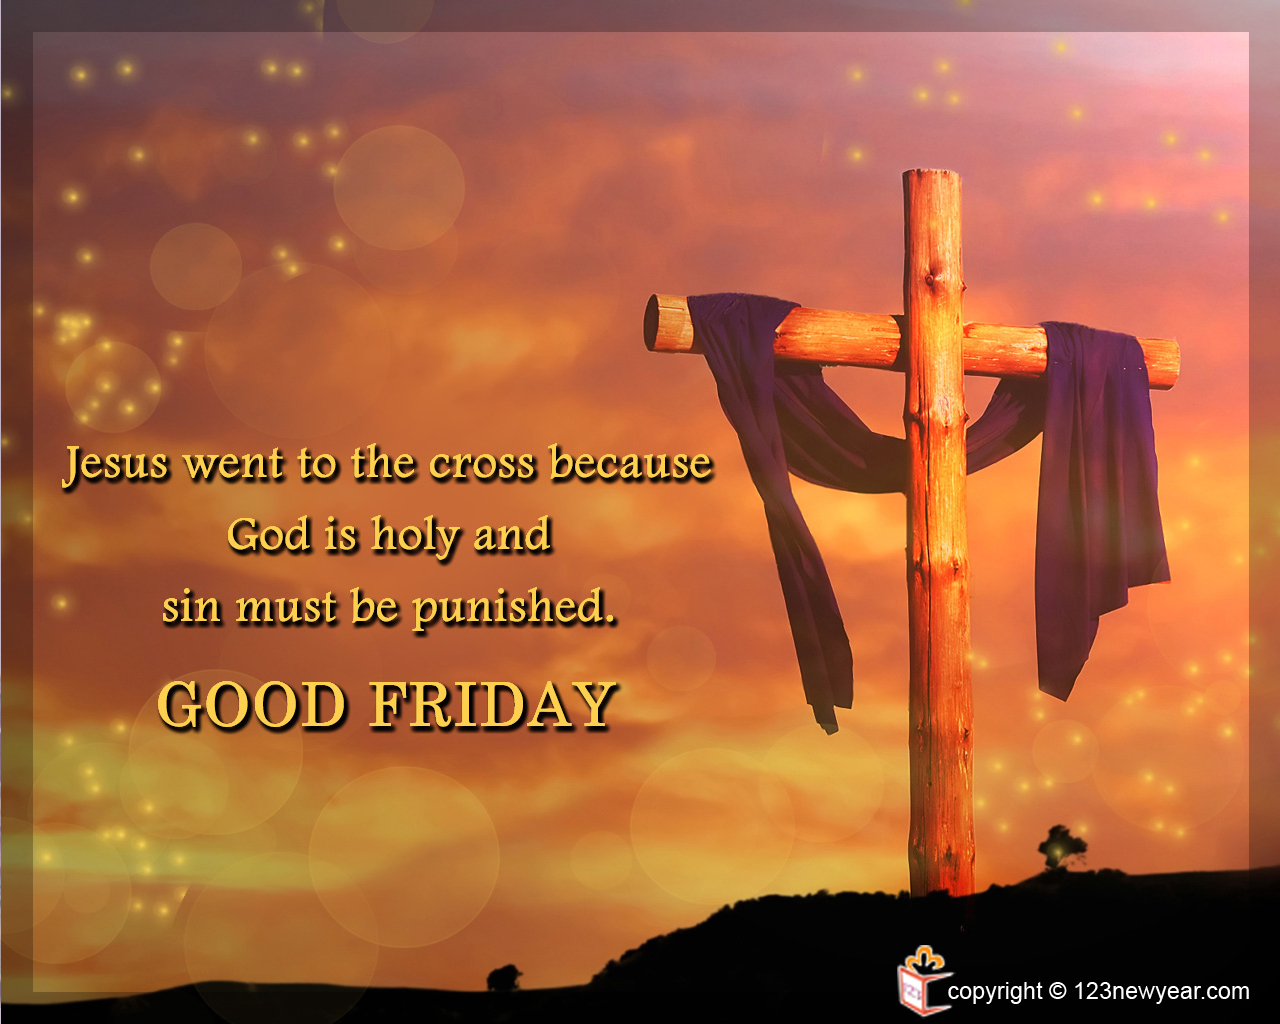 12 good friday message wishes text messages of good friday 2018 good friday themes kristyandbryce Choice Image